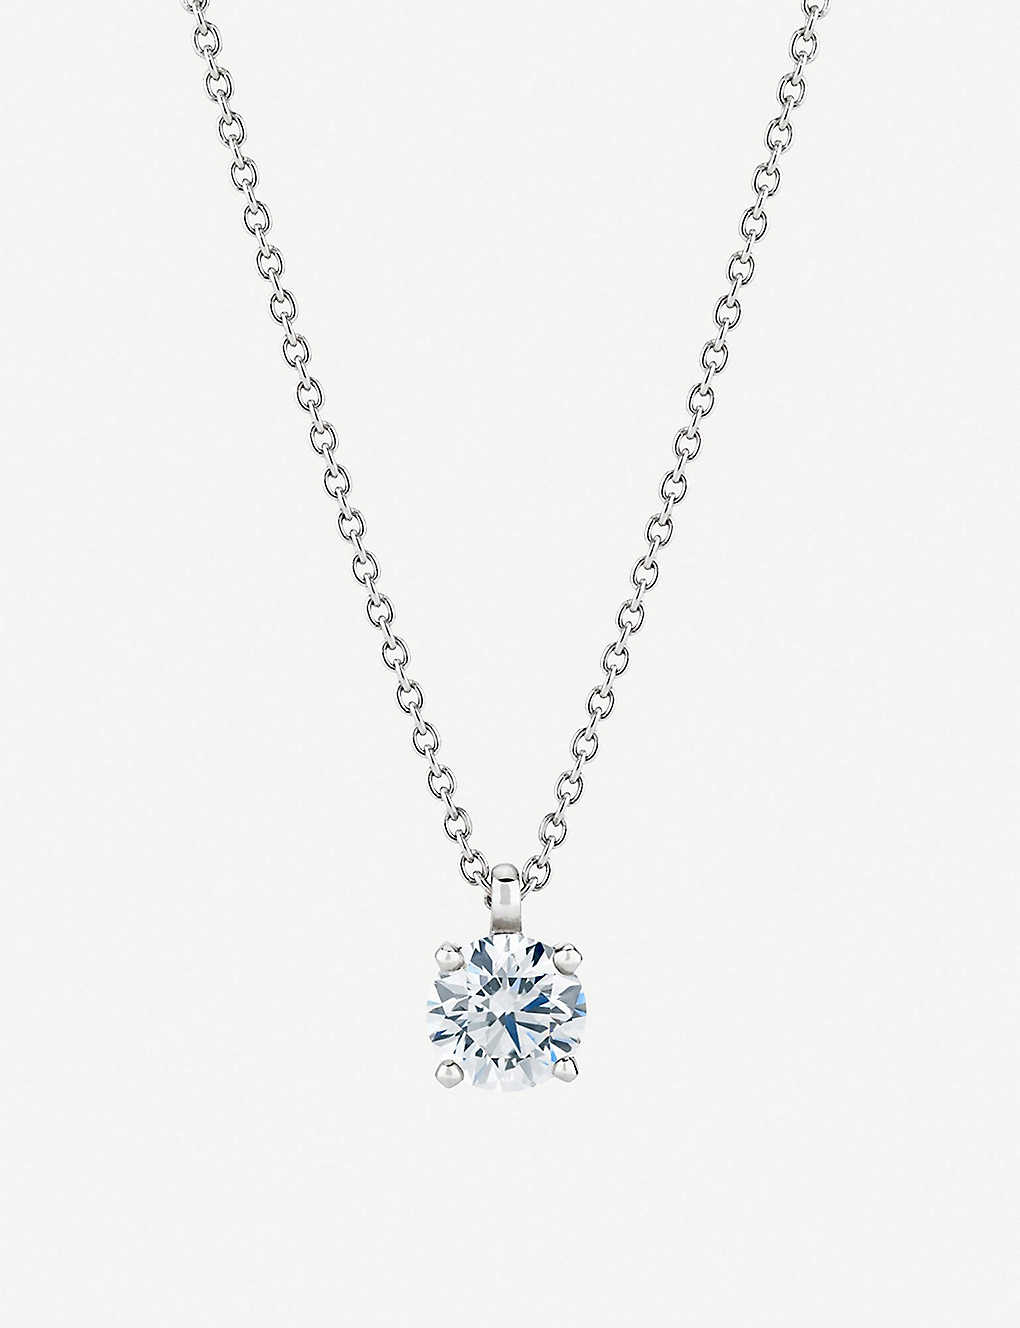 2b7ff0b6eeb8a My First De Beers Classic Pendant white gold diamond necklace